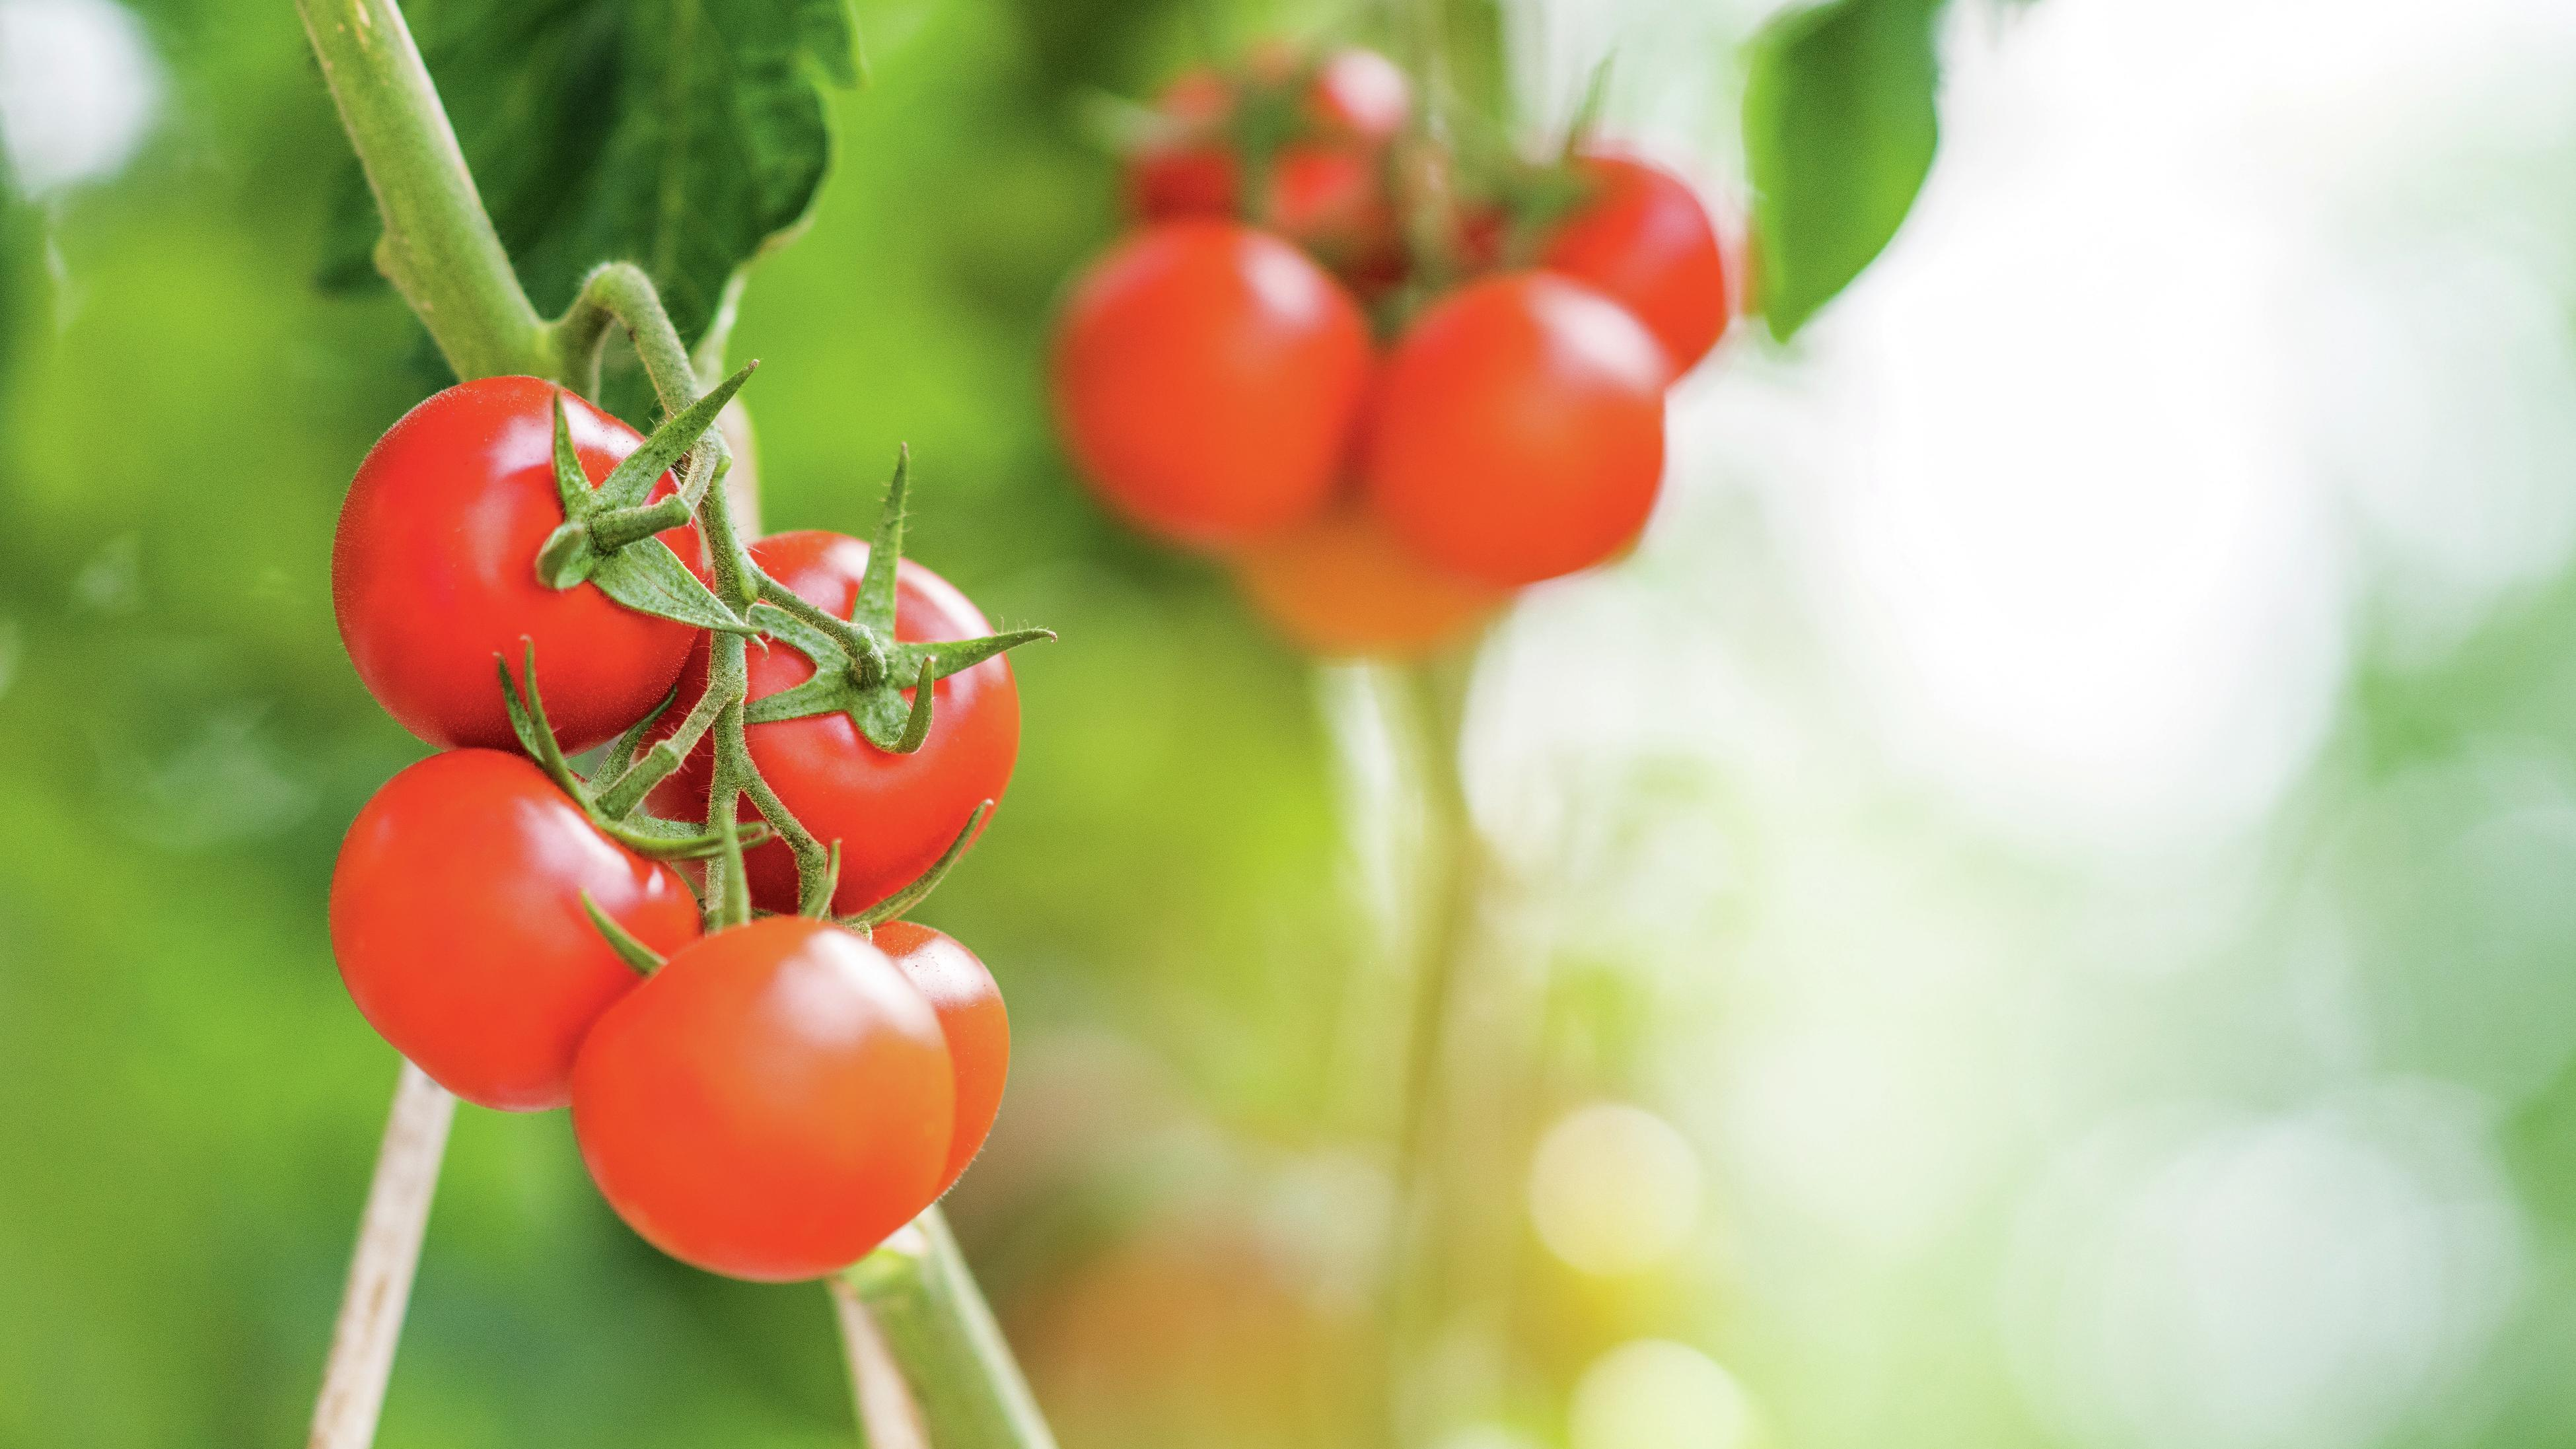 Red tomatoes growing on a vine